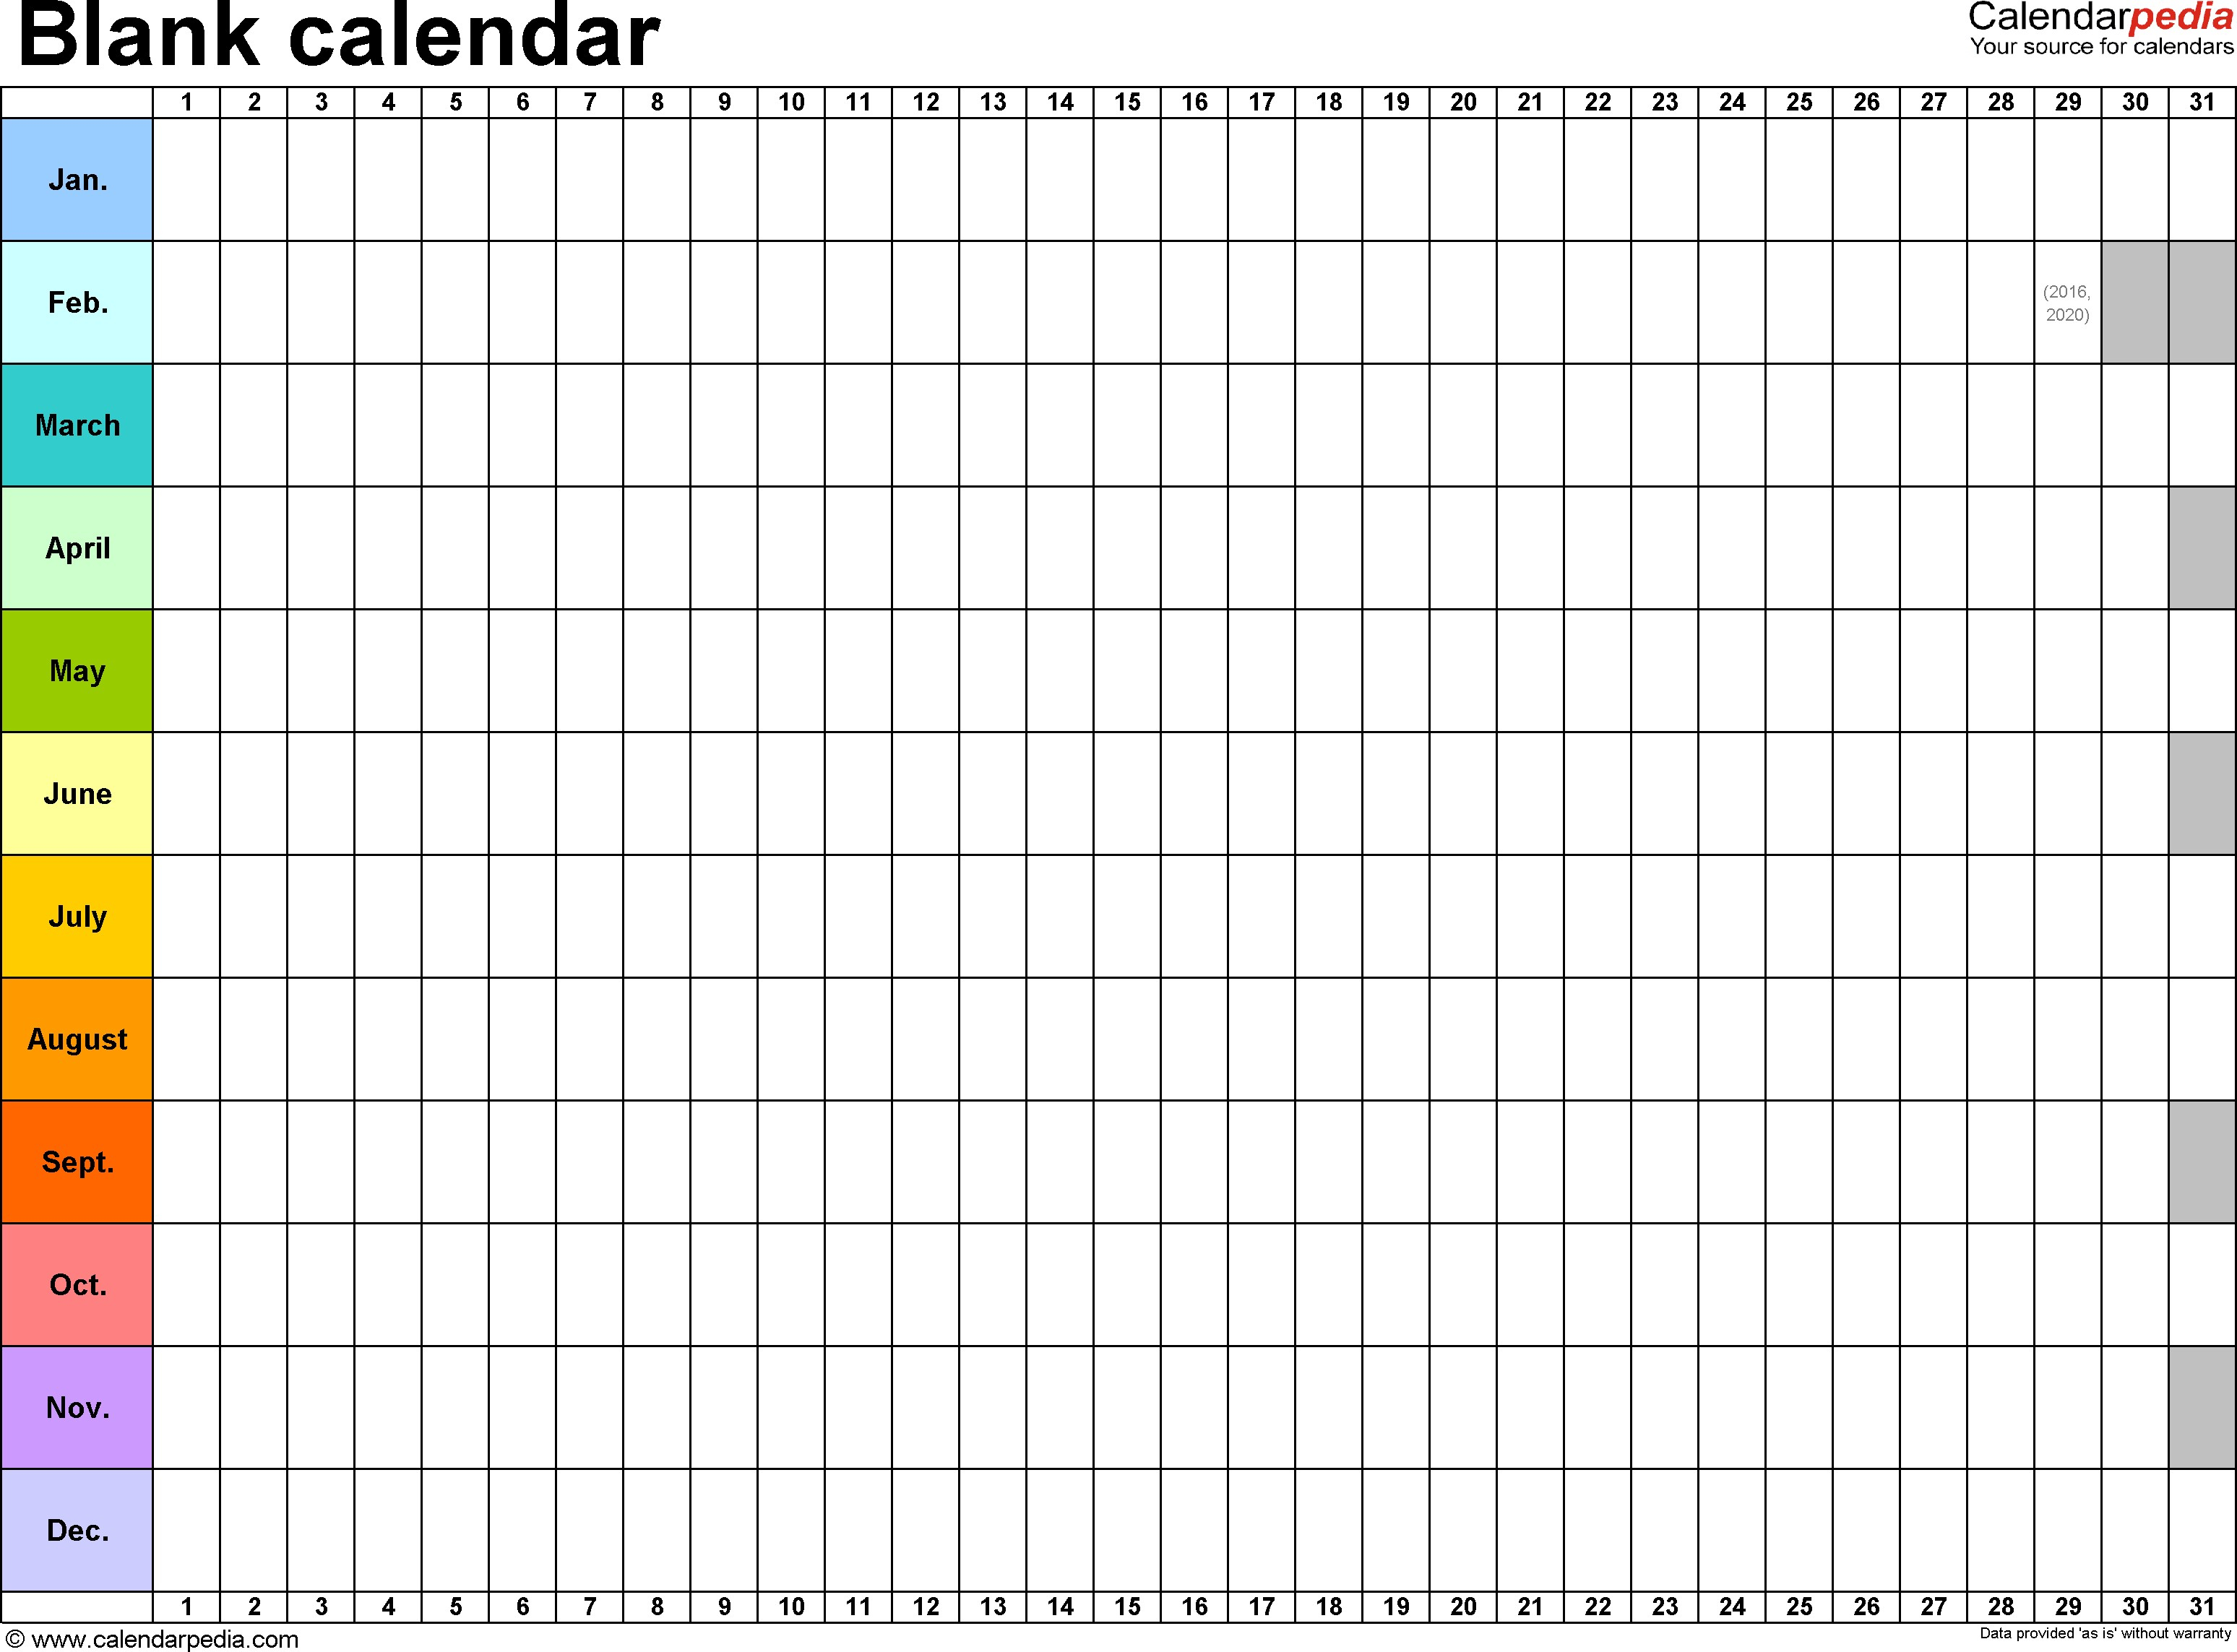 Month Calendar Template Word | Thekpark-Hadong with regard to Blank 12 Month Calender